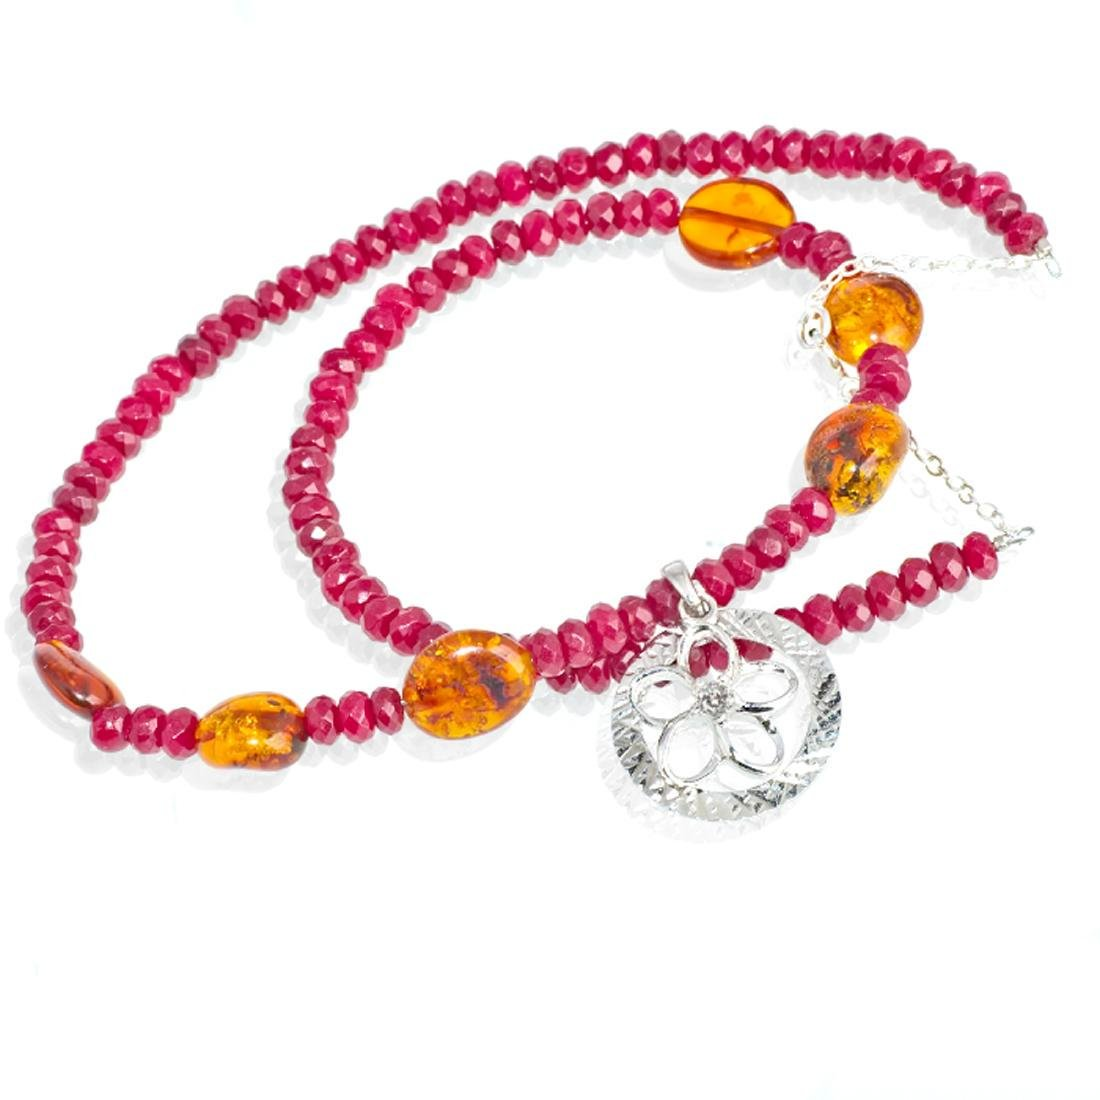 Sterling Silver Red Skin Jadeite Baltic Amber Necklace - 3